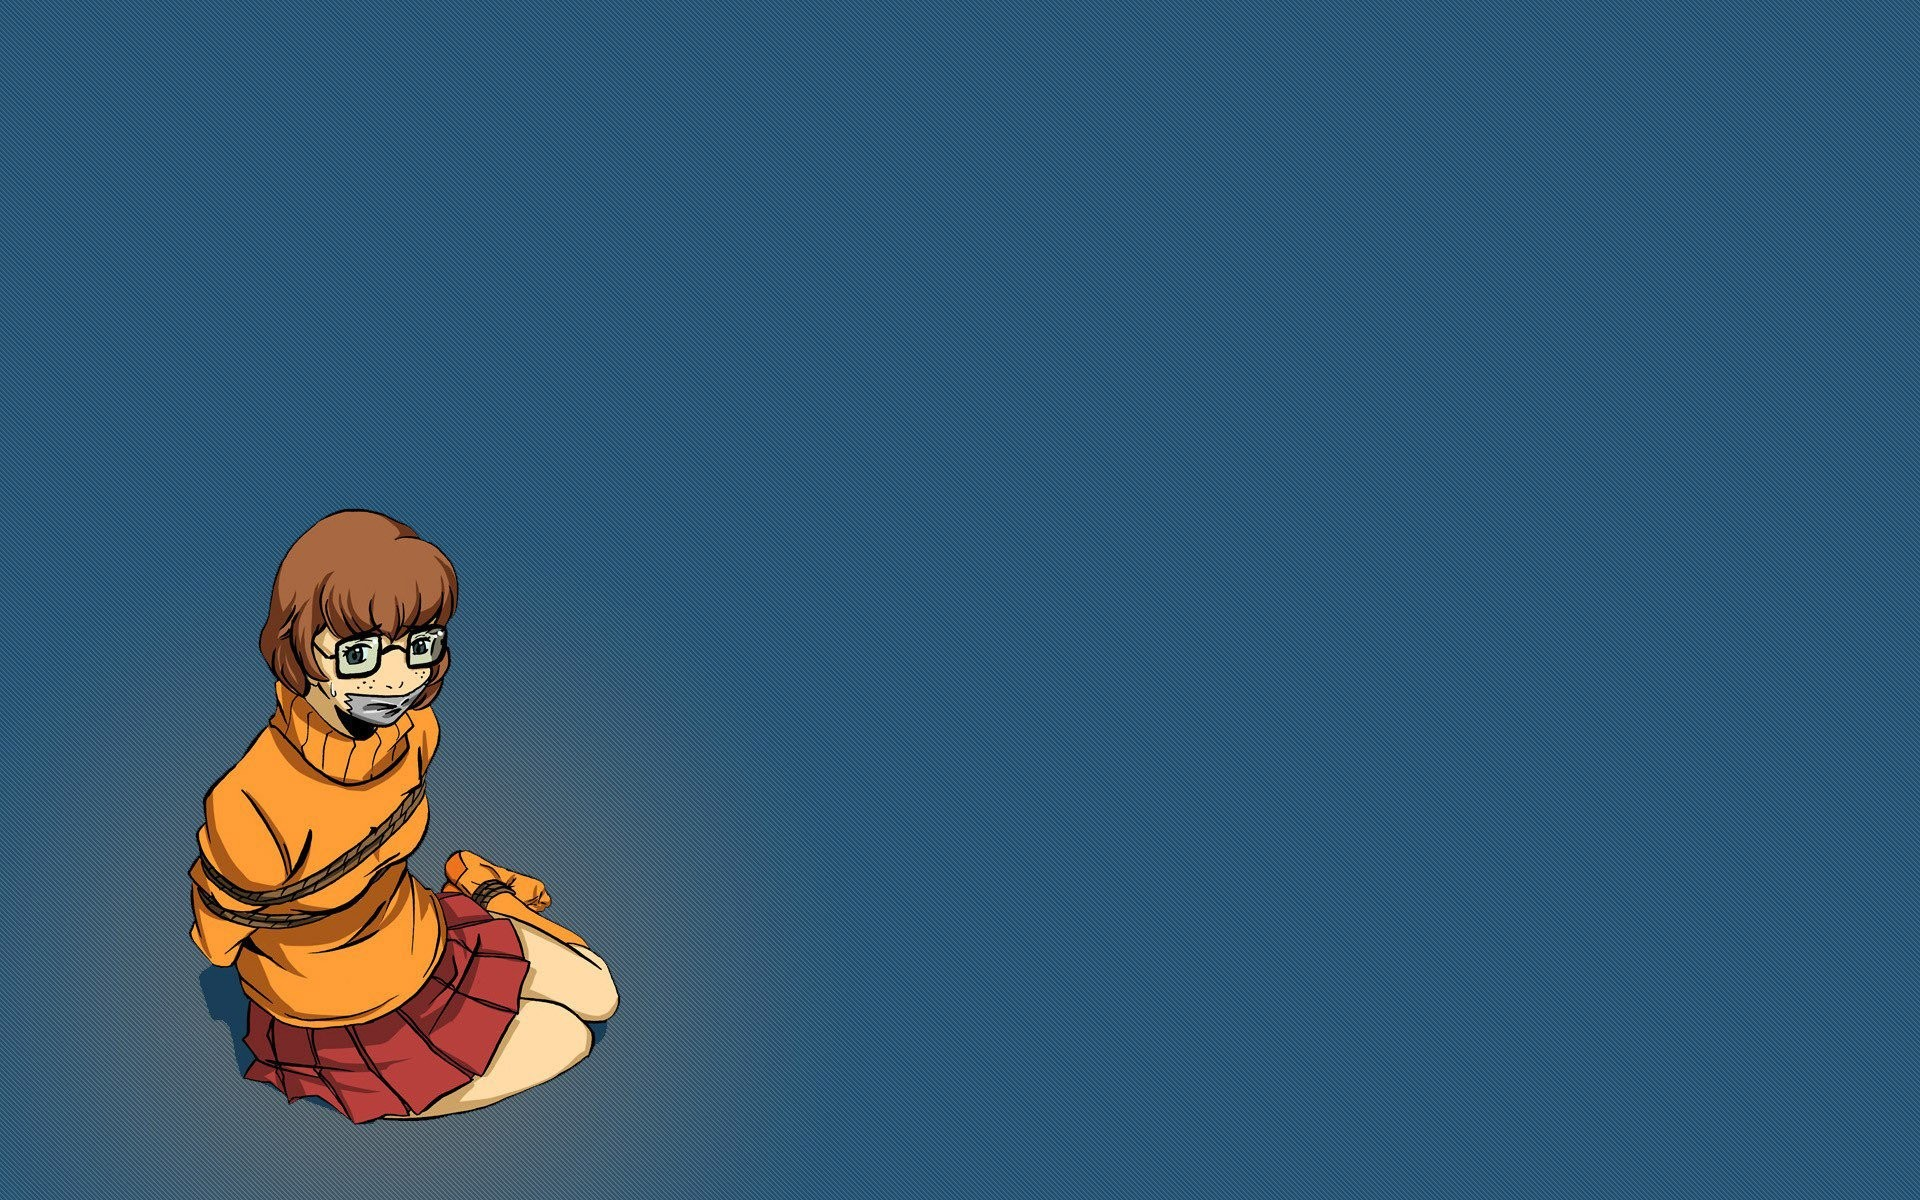 Scooby doo backgrounds 66 images 1920x1200 wallpaper scooby doo background download free pic voltagebd Gallery